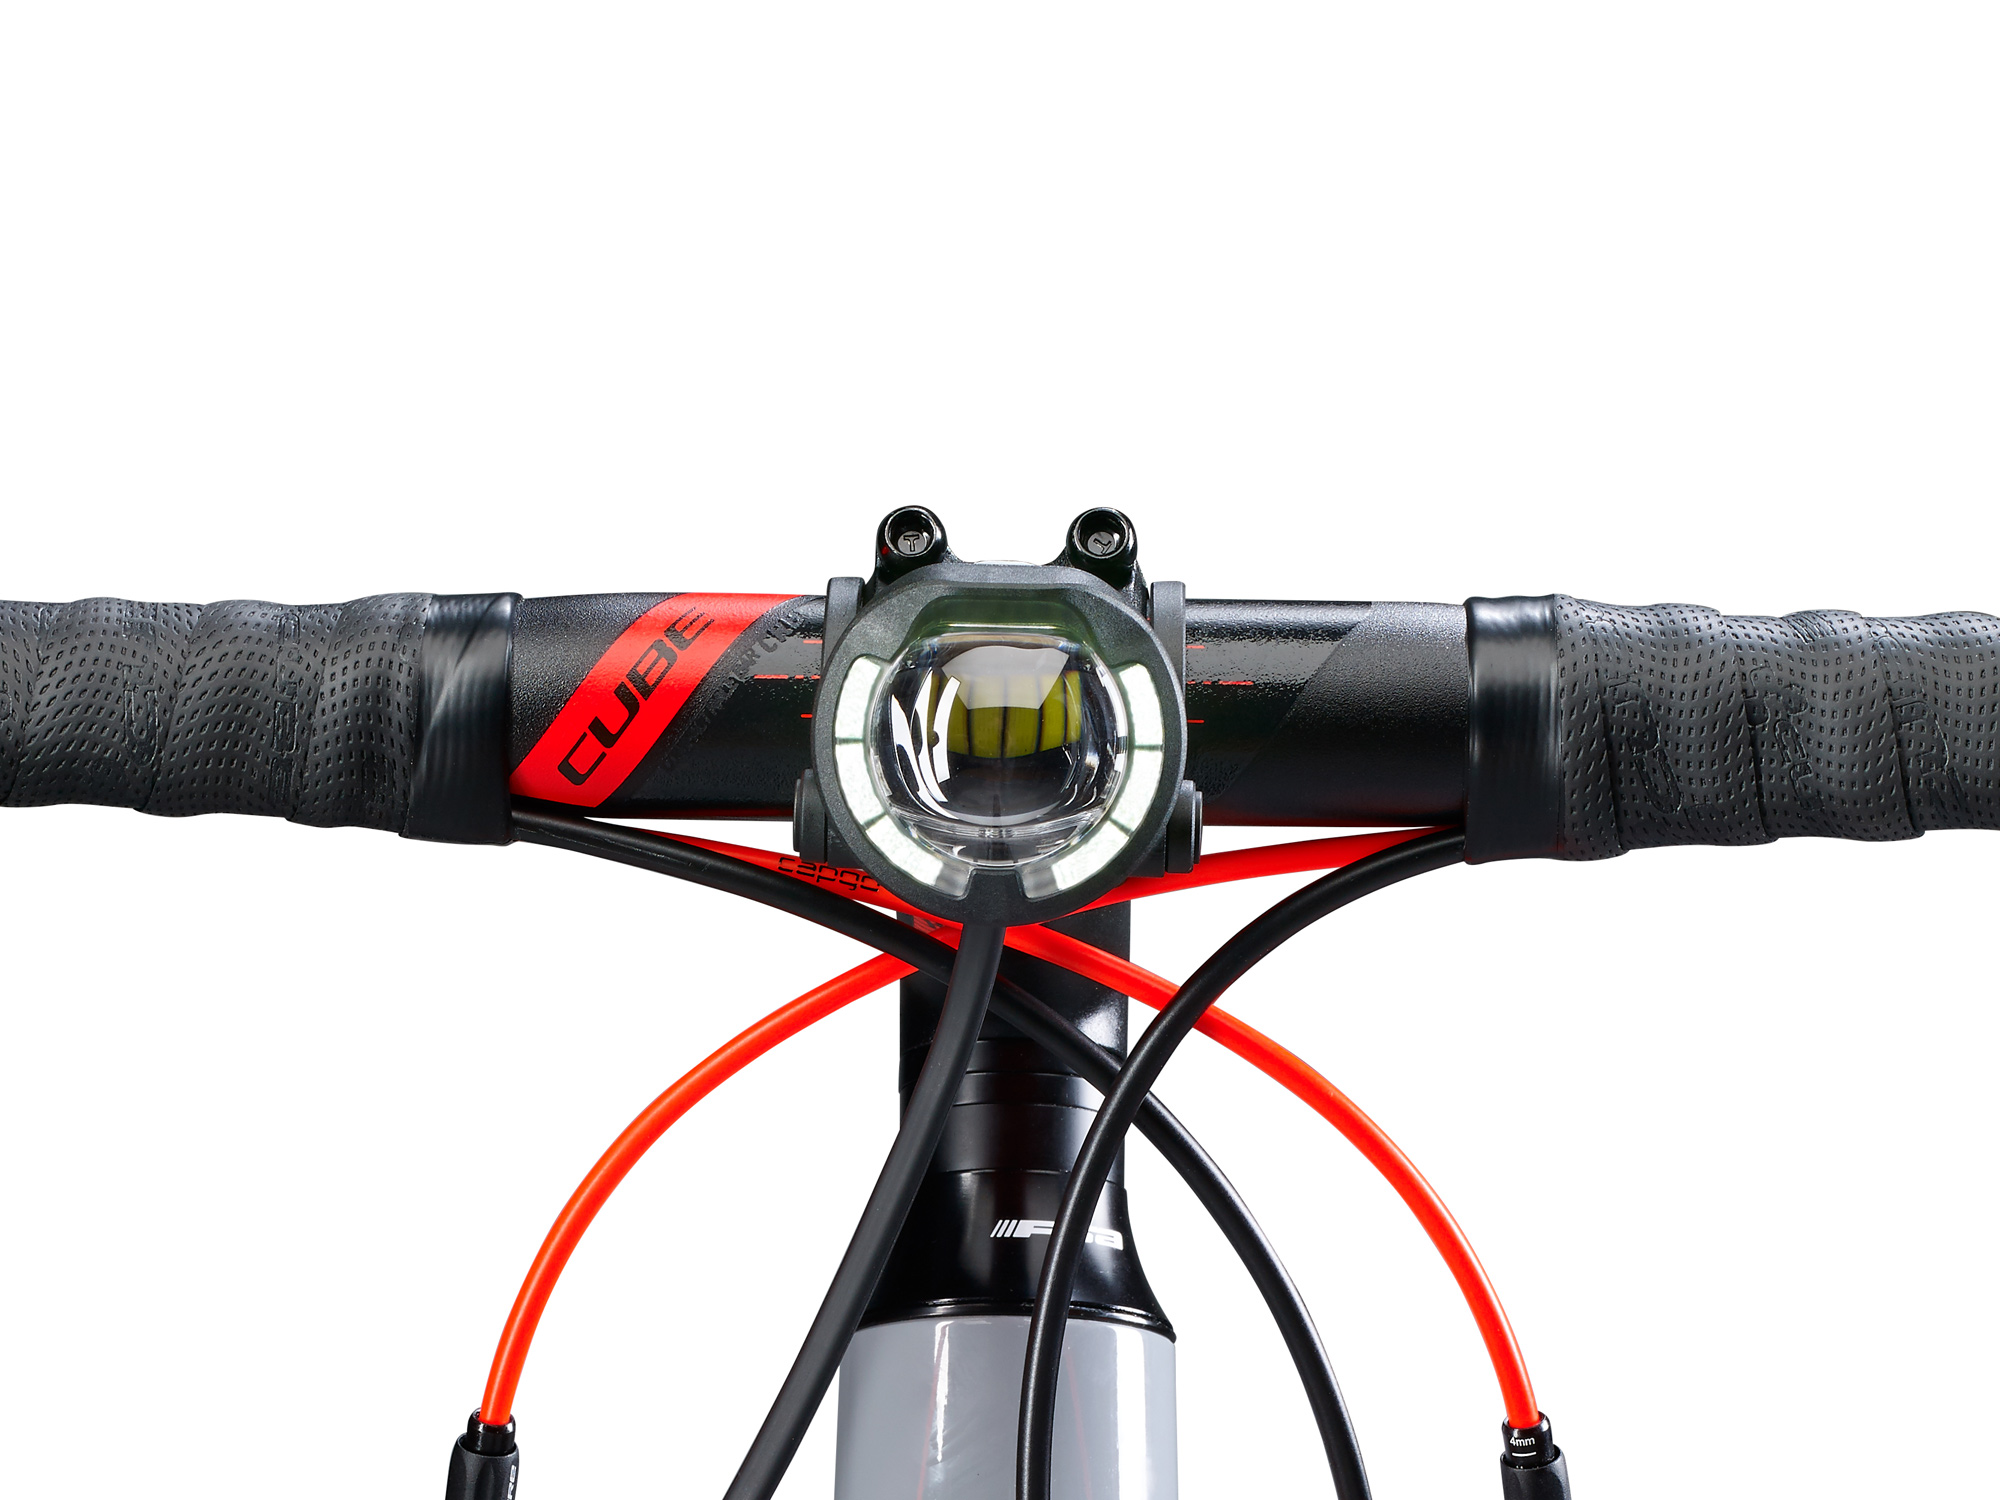 SL A road bike headlight